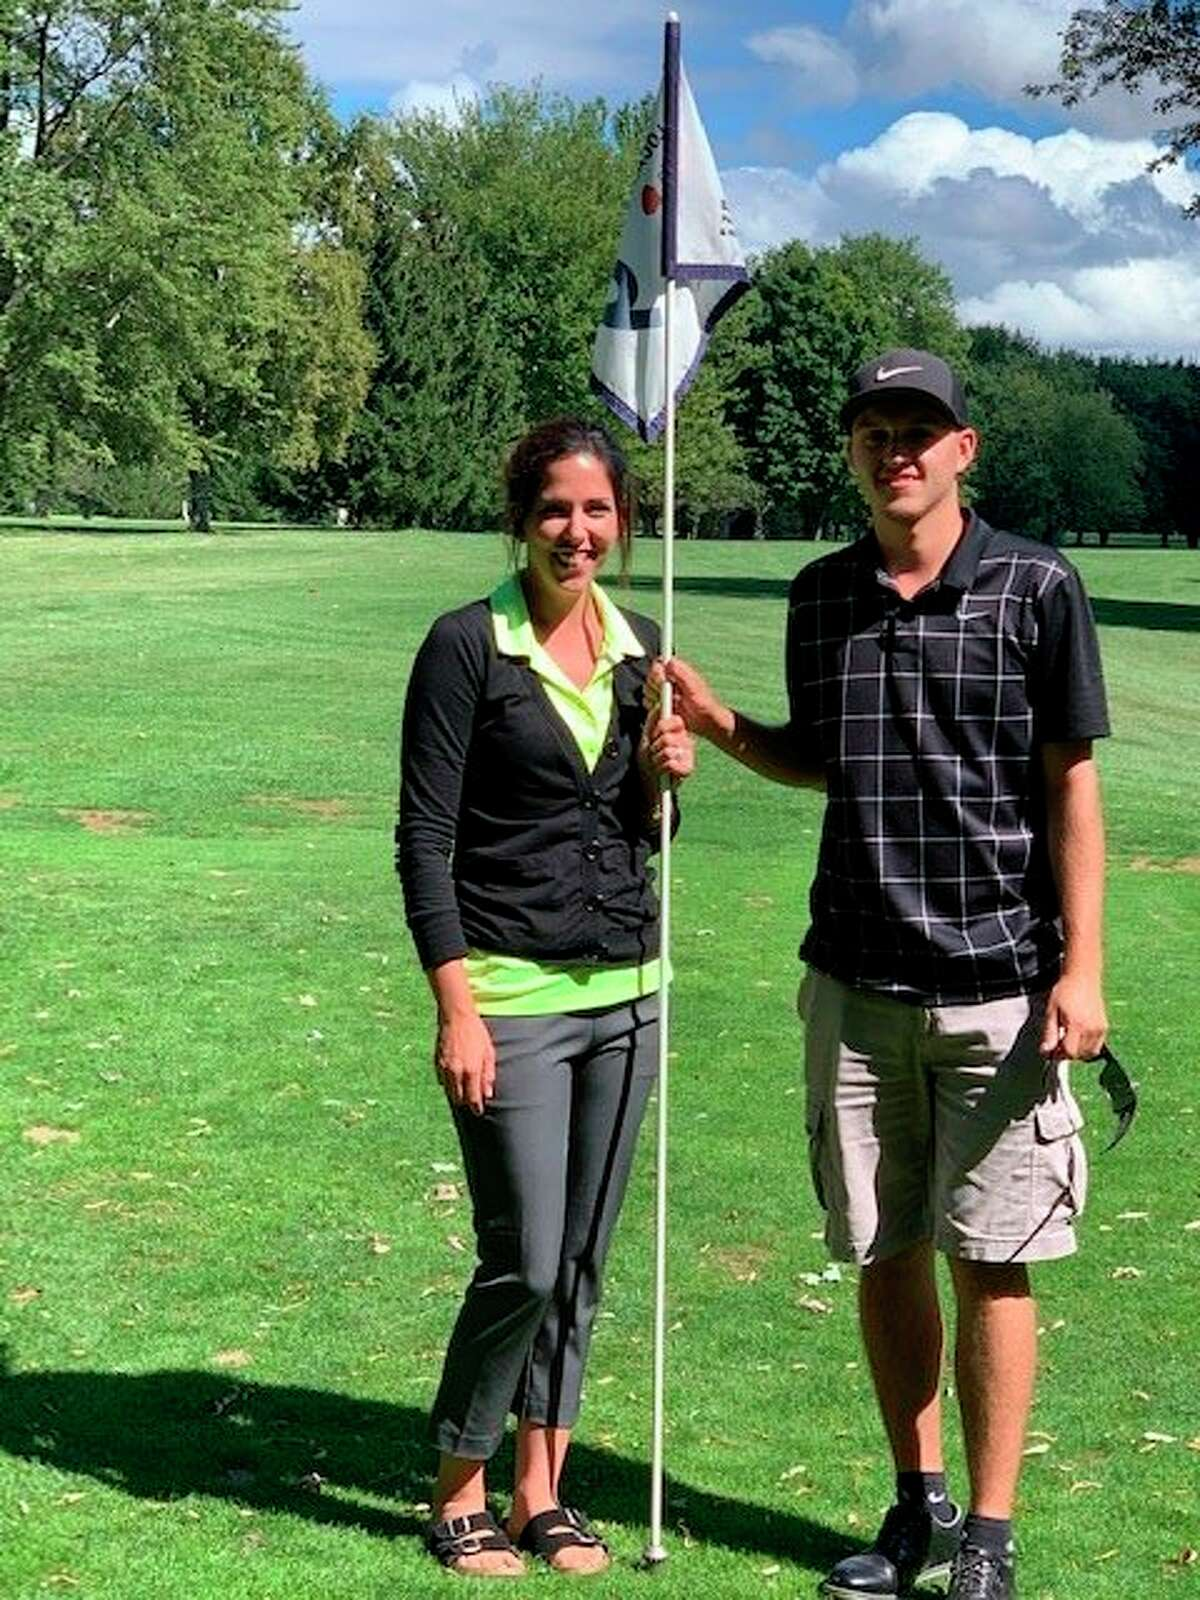 Caseville Golf Course recently announced their club champs. They are, left, Crystal Glaza-101 18-hole total and, right, Skylir Fillion-150 36 hole total. (Submitted Photo)